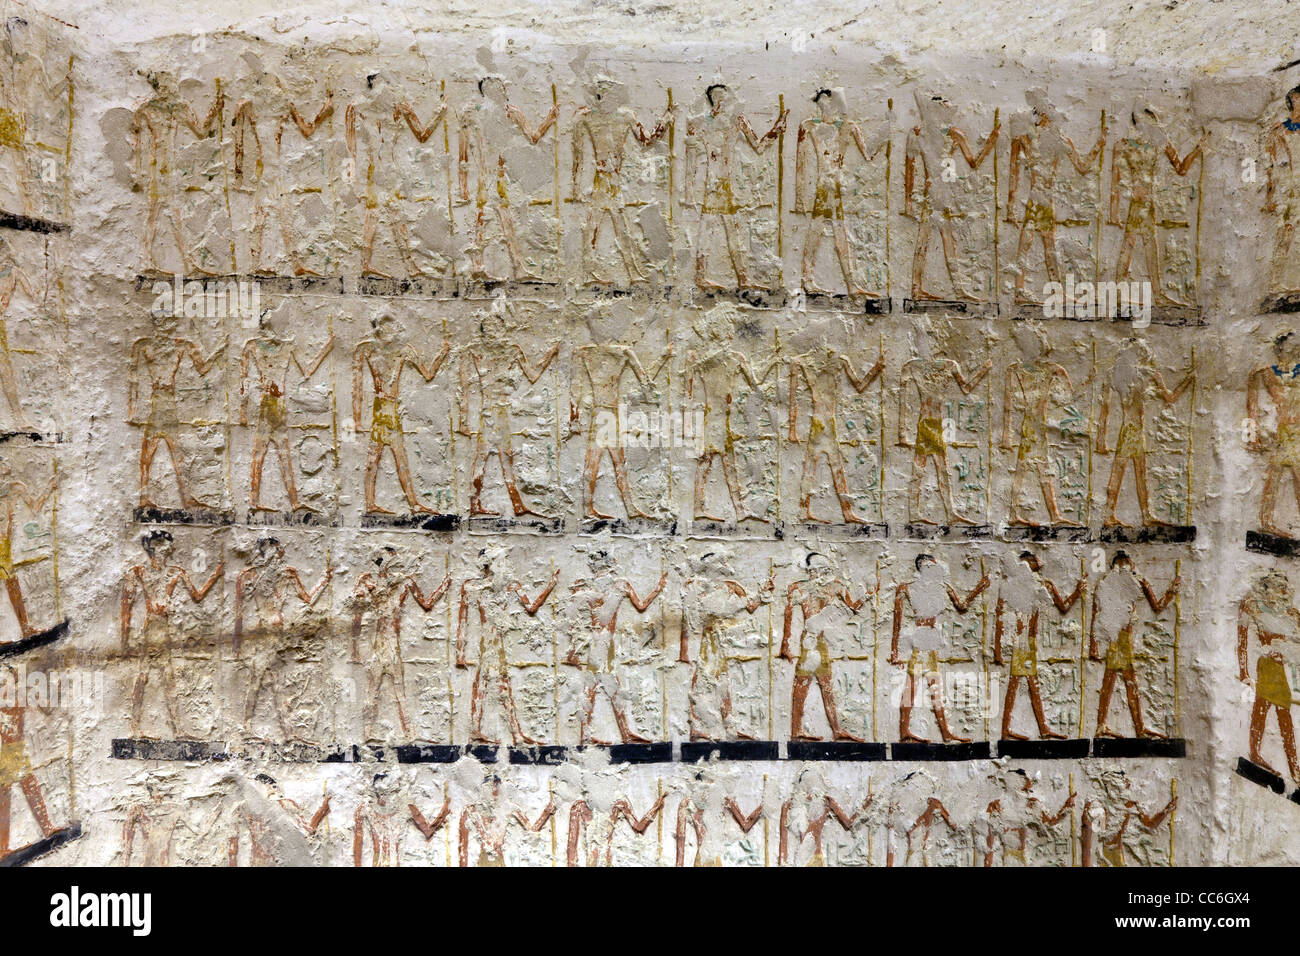 Reliefs in the Old Kingdom tomb of Ni Ankh Pepy Kem at Meir , North West of Asyut in Middle Egypt - Stock Image